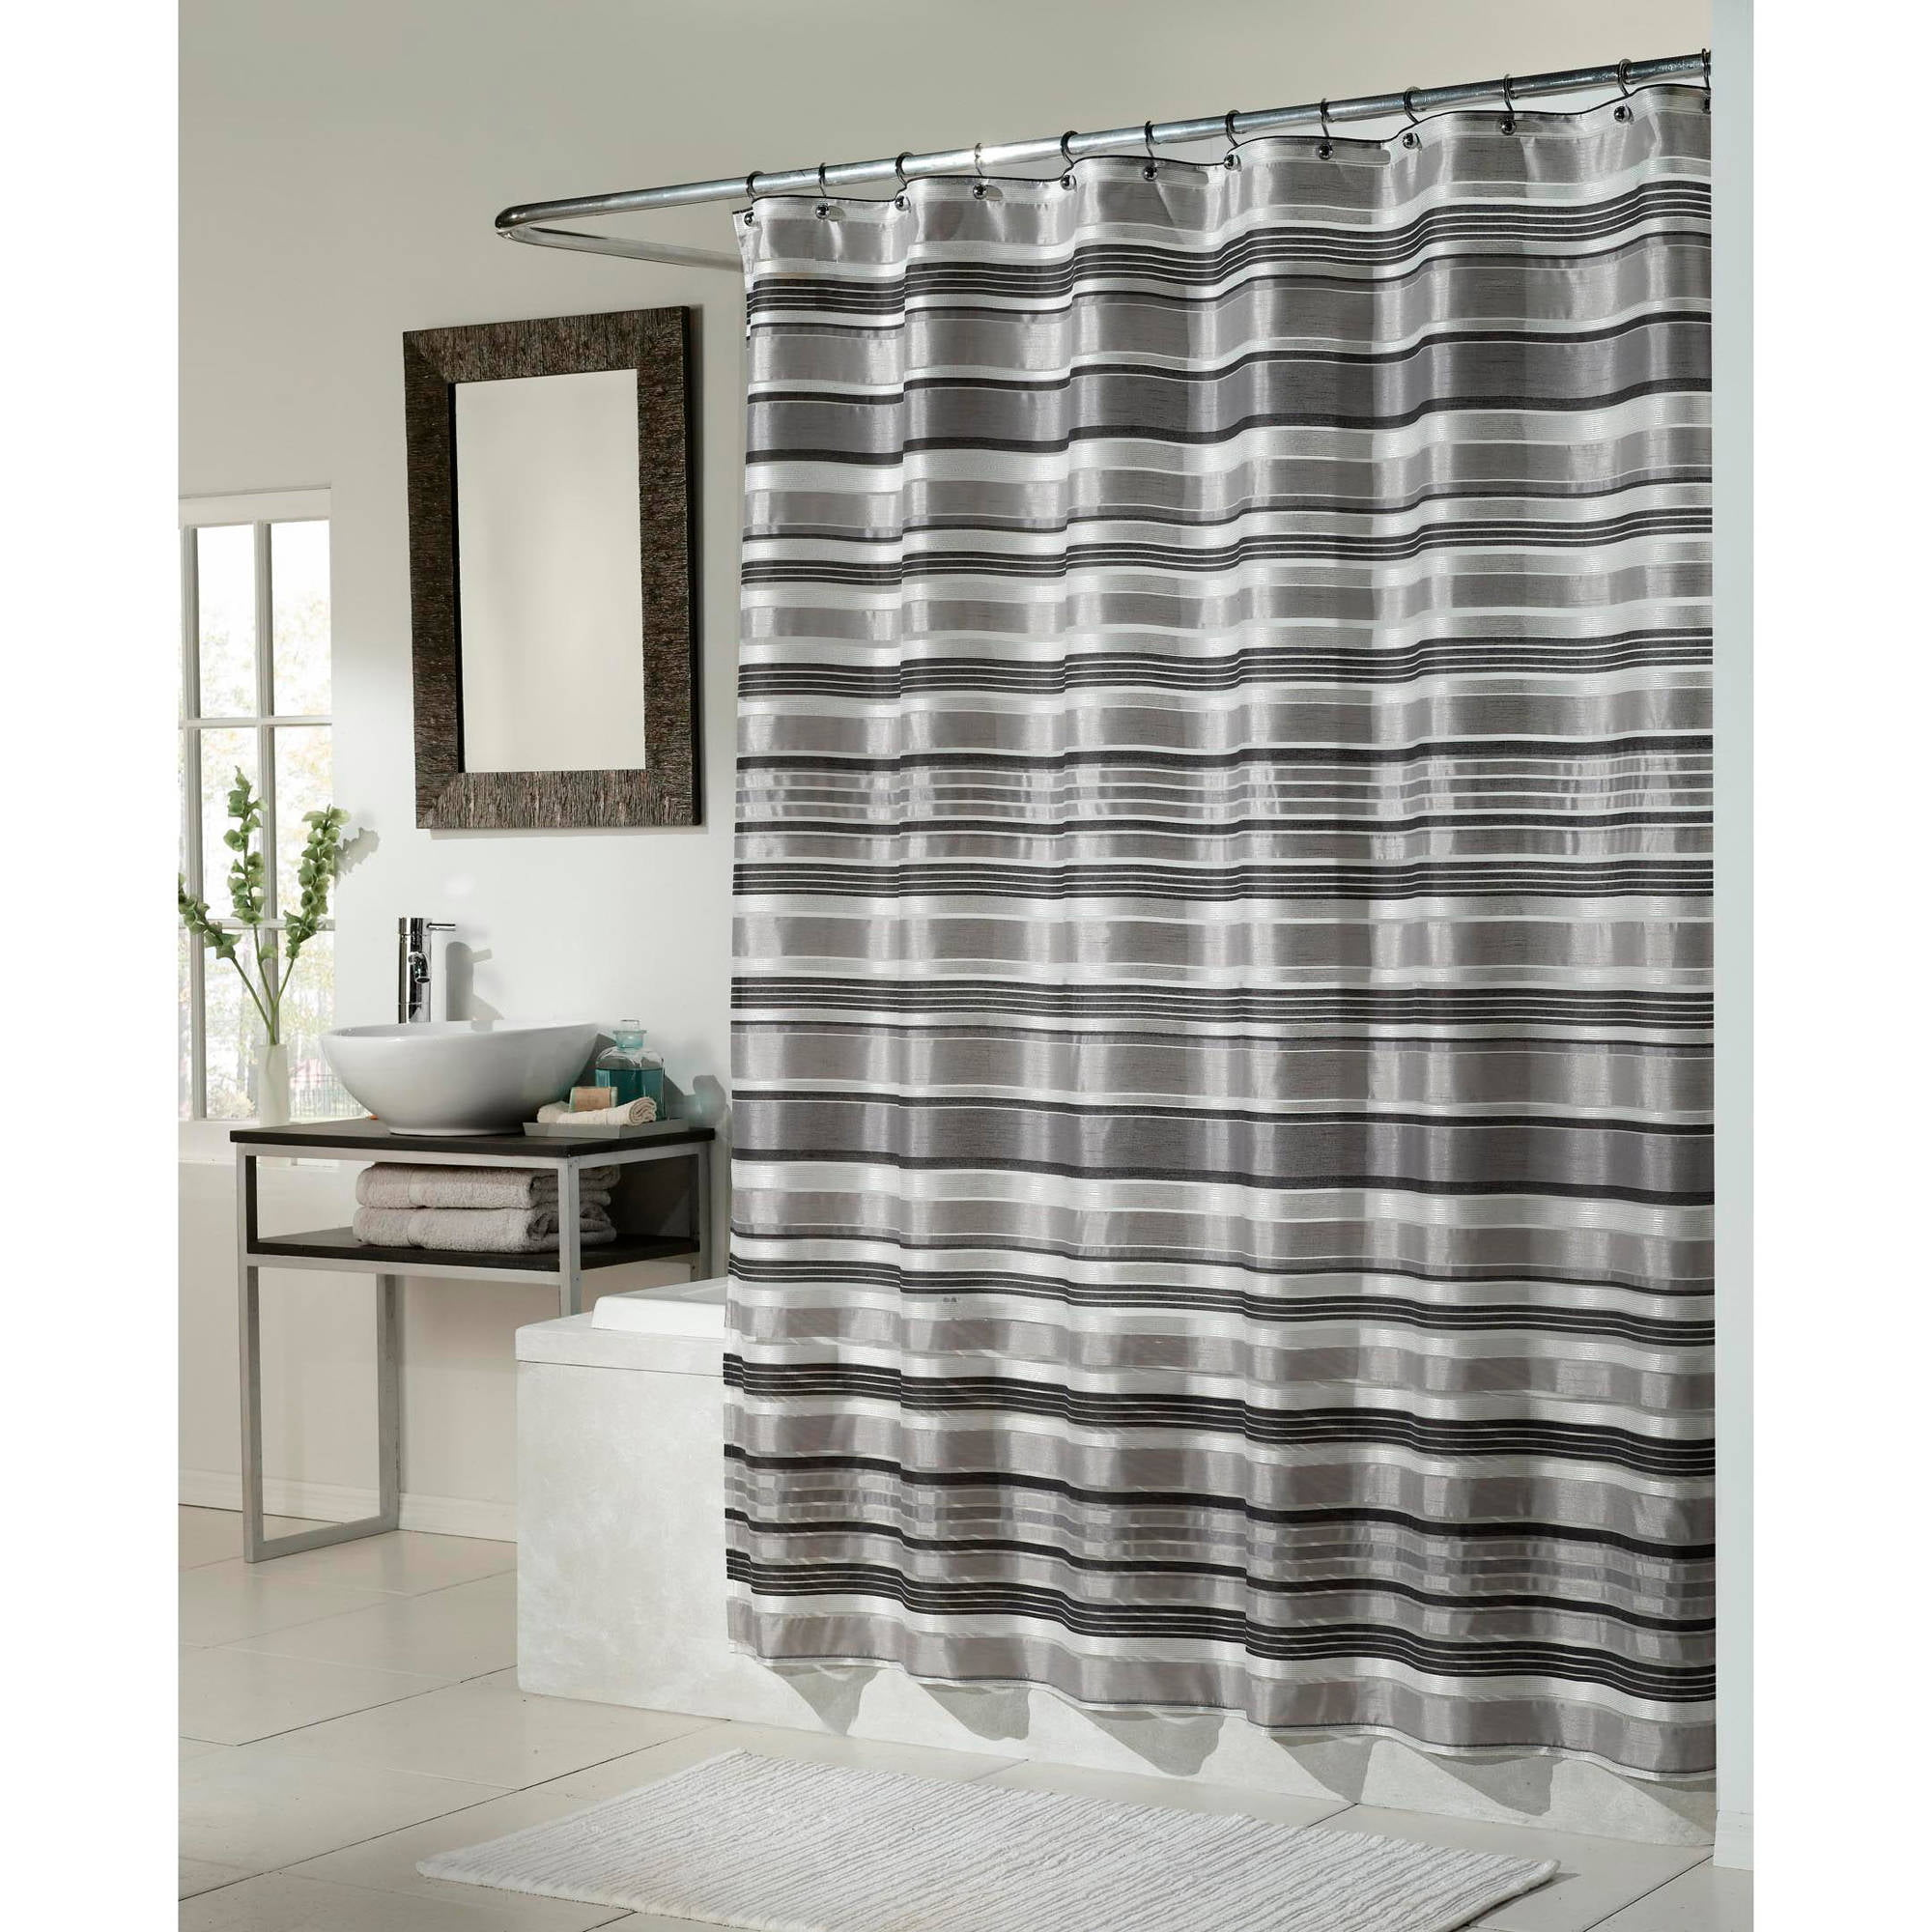 Glacier Fabric Shower Curtain, Black Silver Combination   Walmart.com